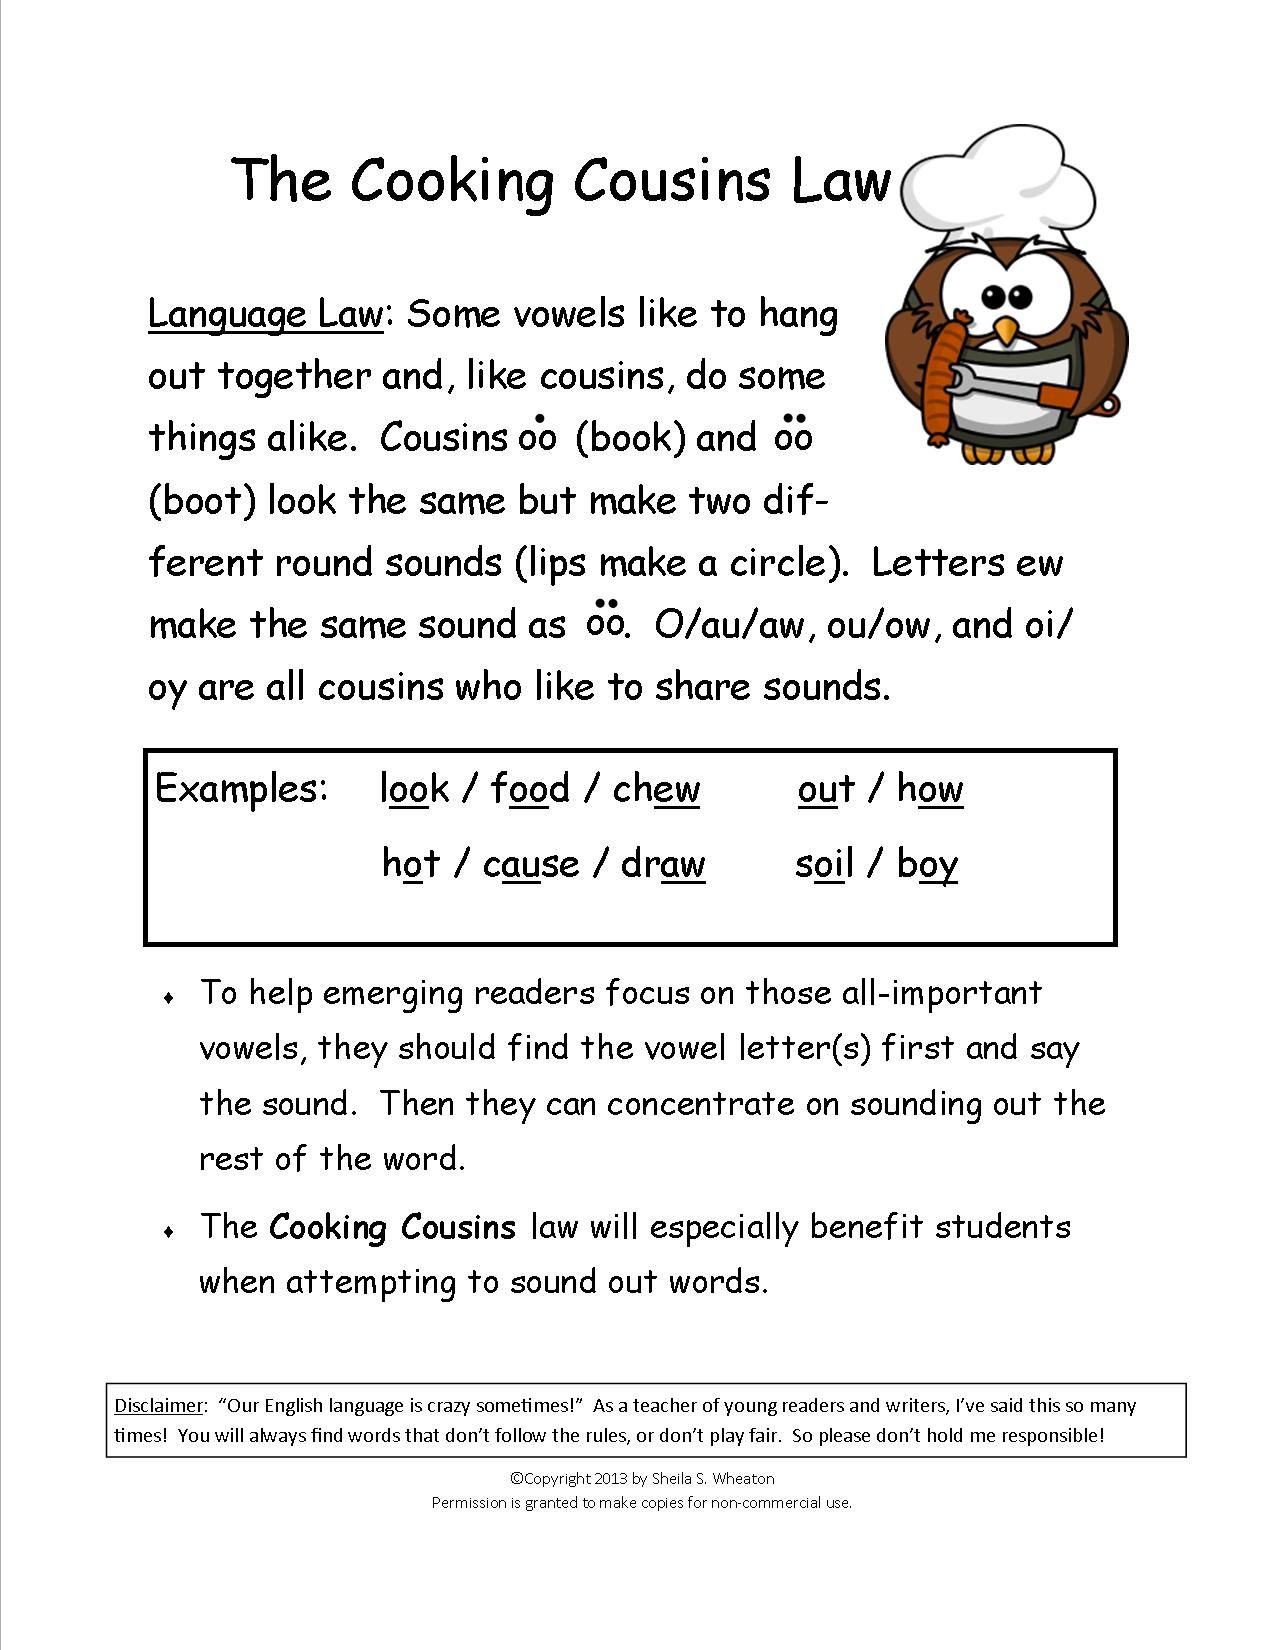 Ou Ow Worksheets 2nd Grade Cooking Cousins Teaches the sounds Made by Oo Book Oo